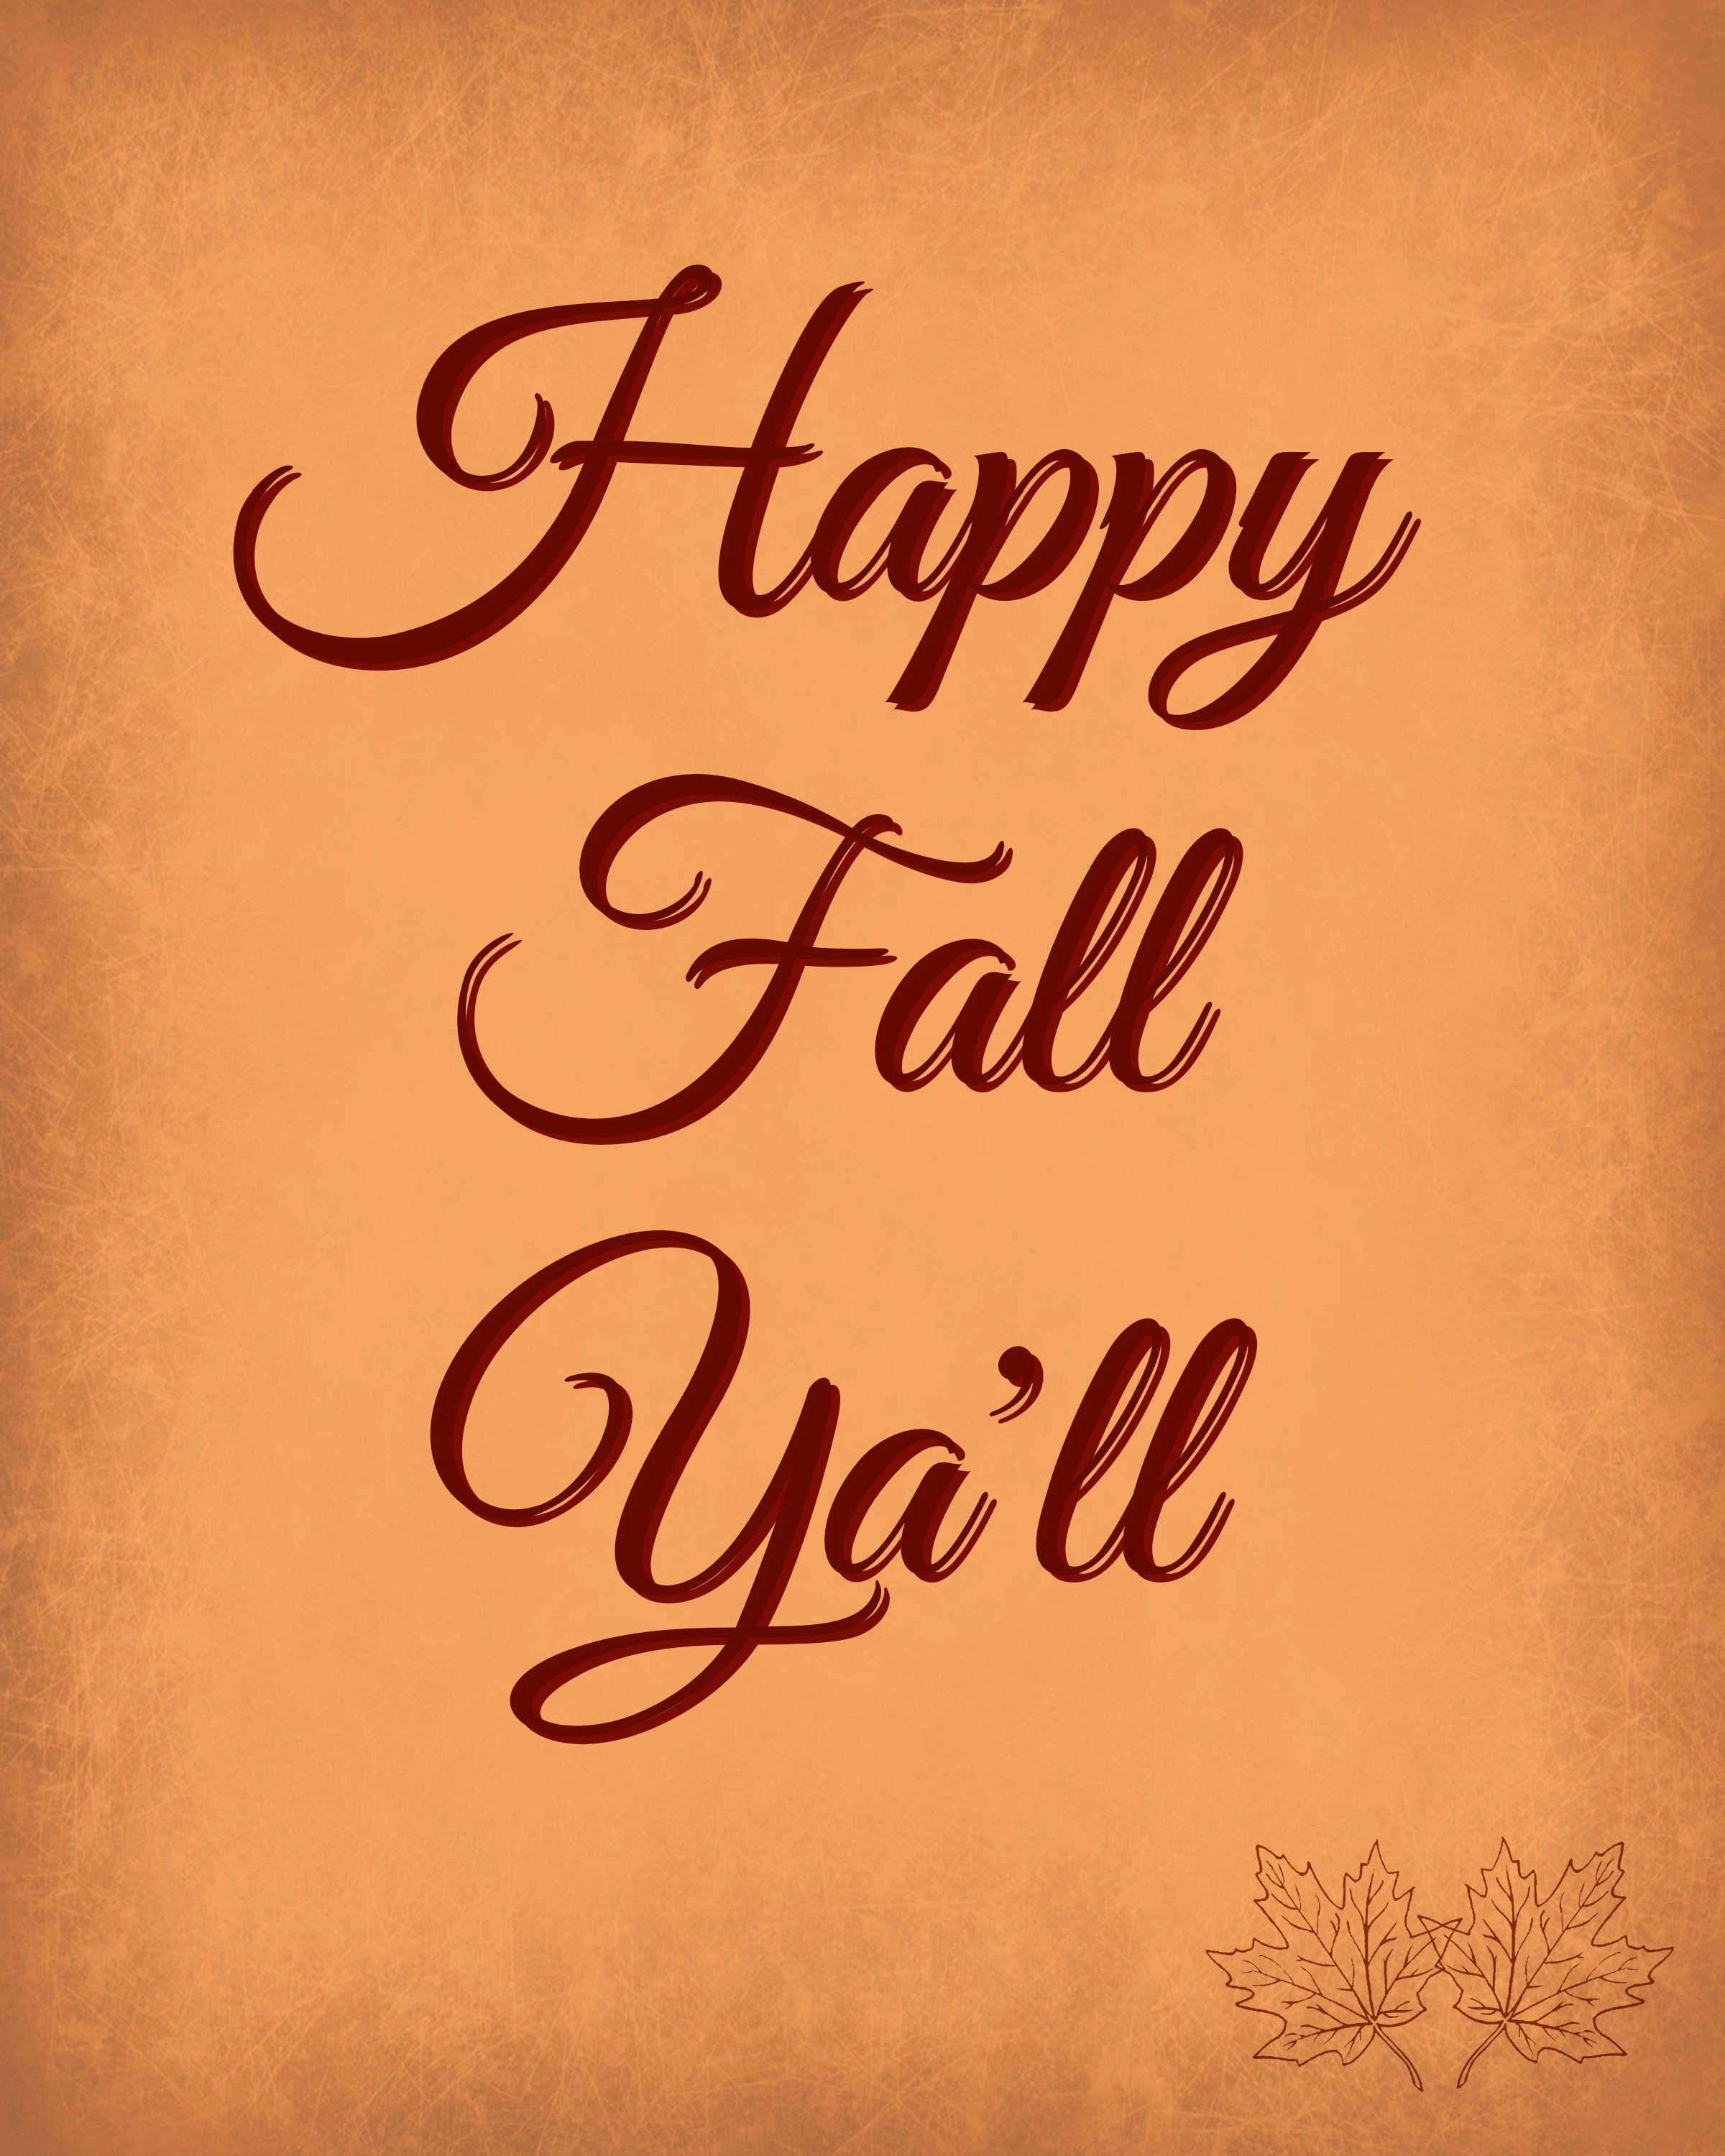 graphic regarding Happy Fall Yall Printable named 17 Absolutely free Drop Printable Signs and symptoms